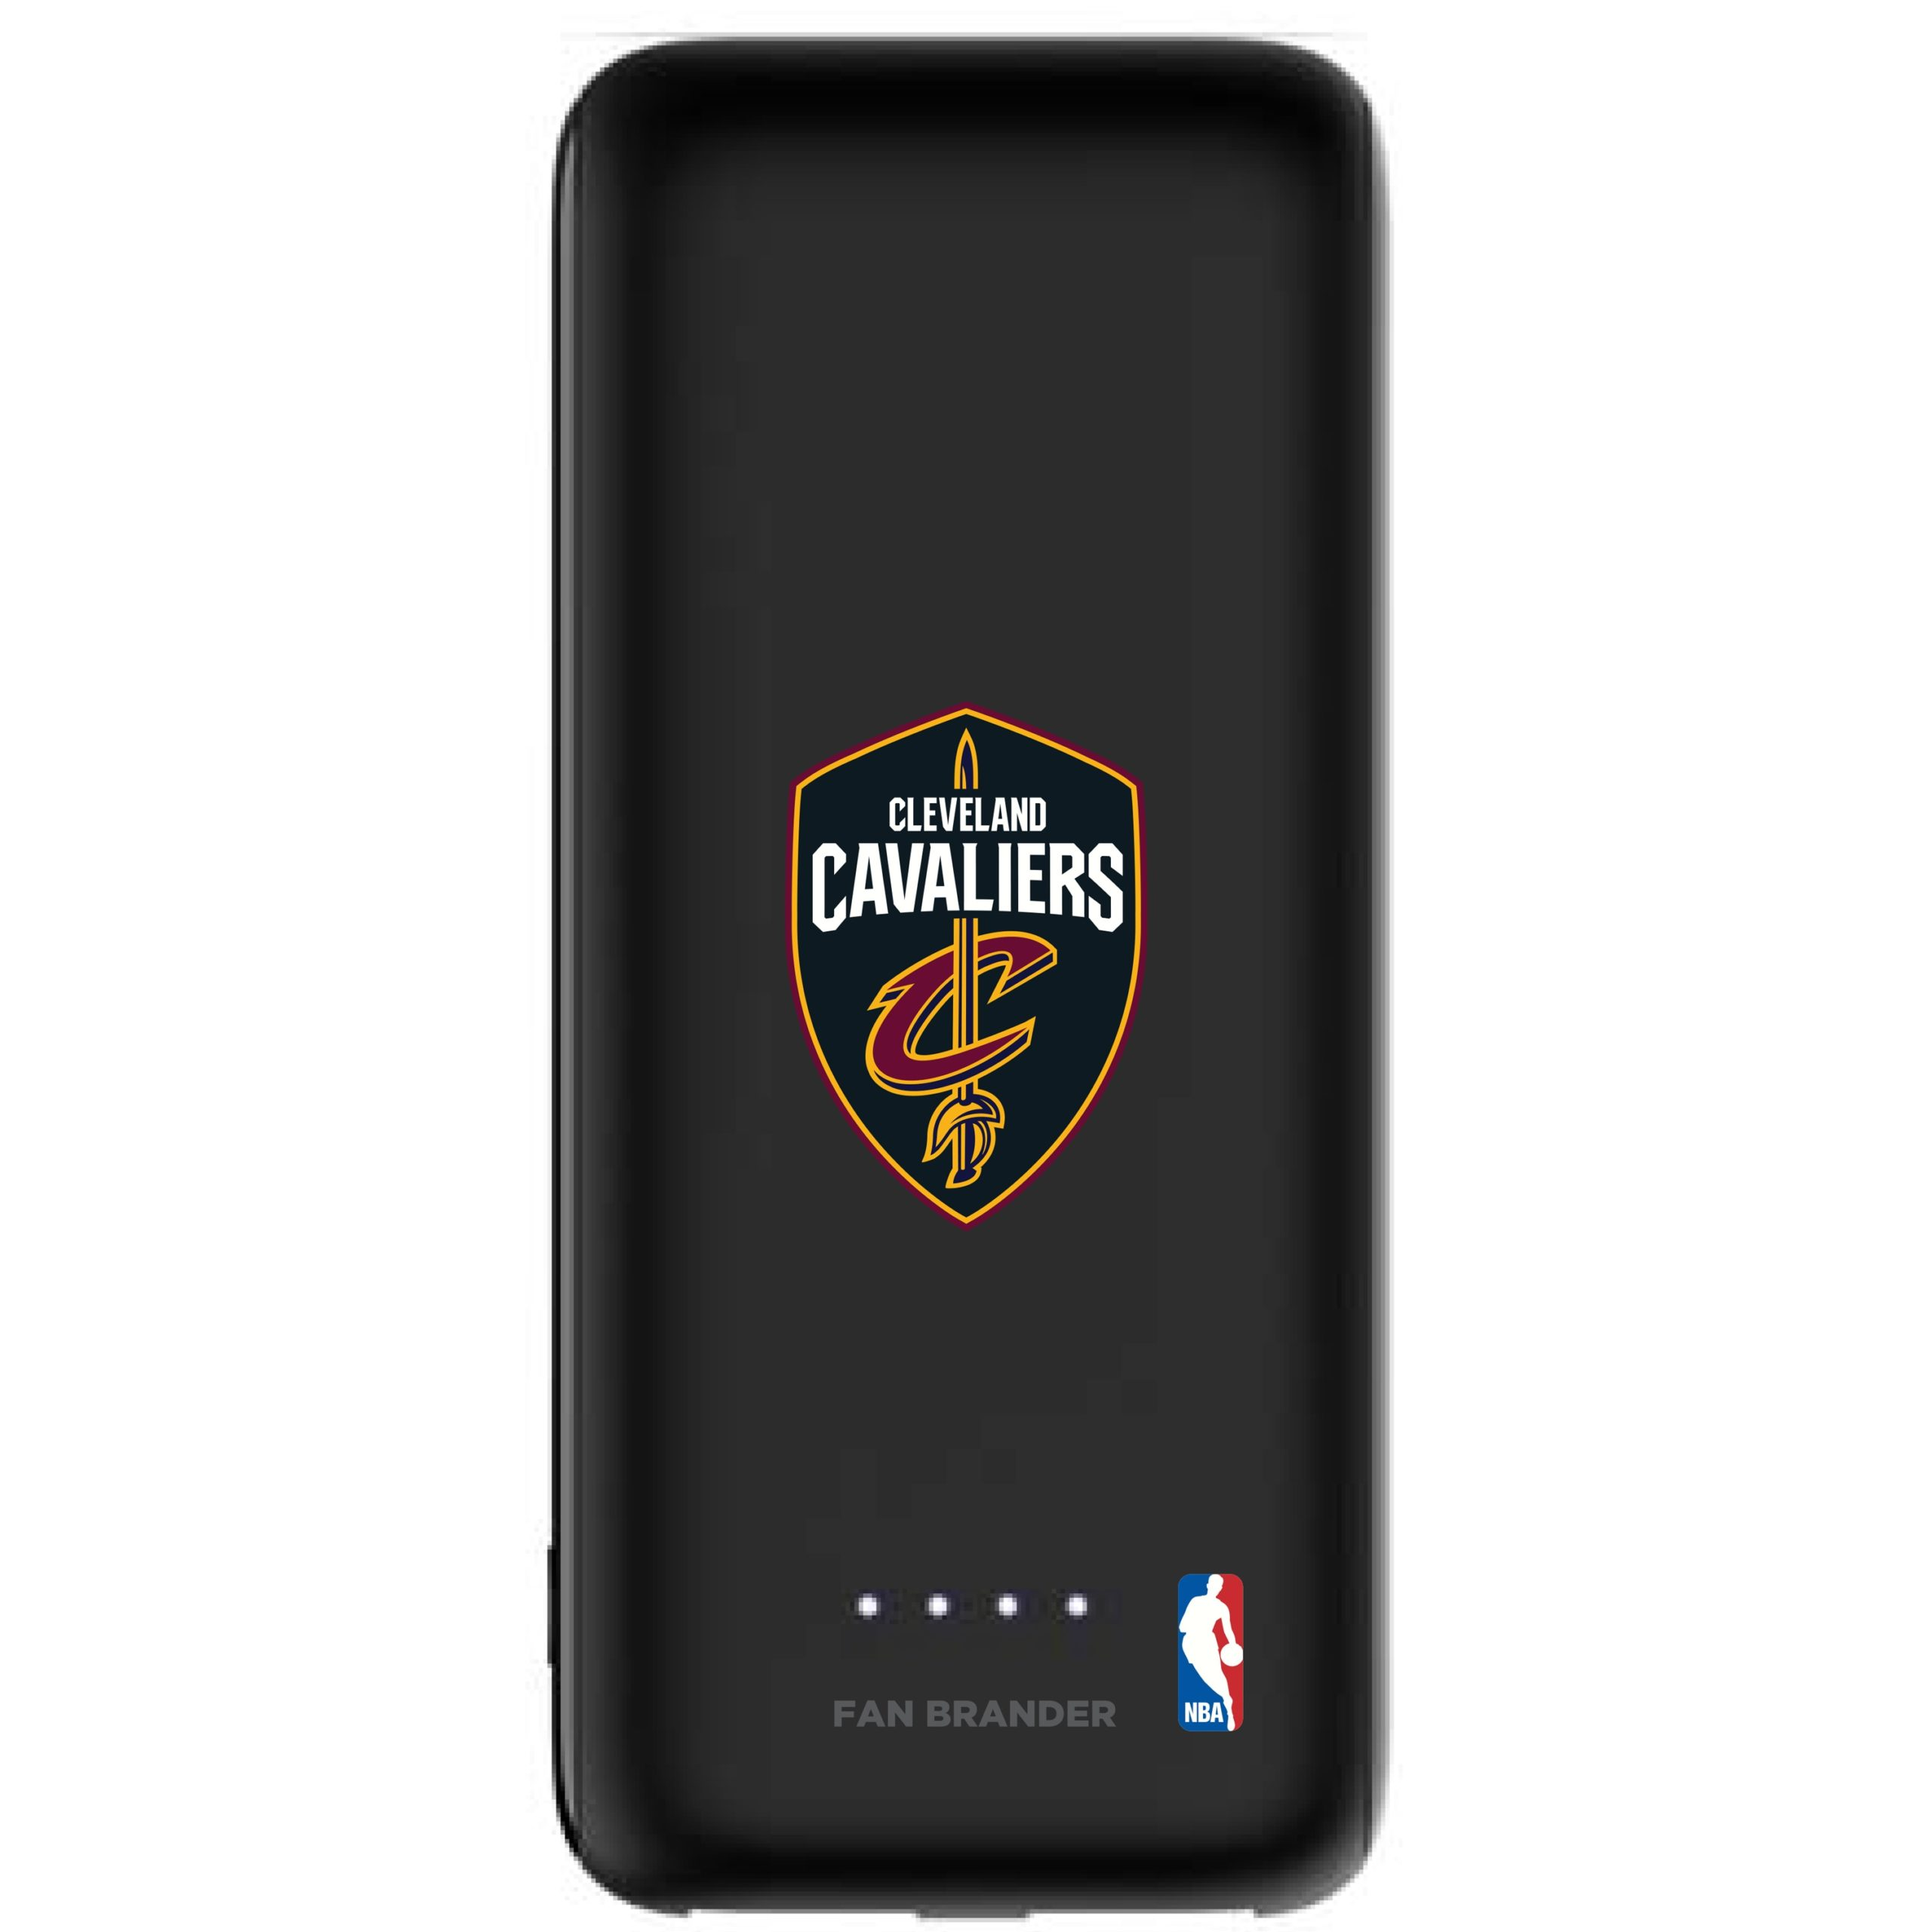 Cleveland Cavaliers mophie 5200 mAh Universal Battery Power Boost